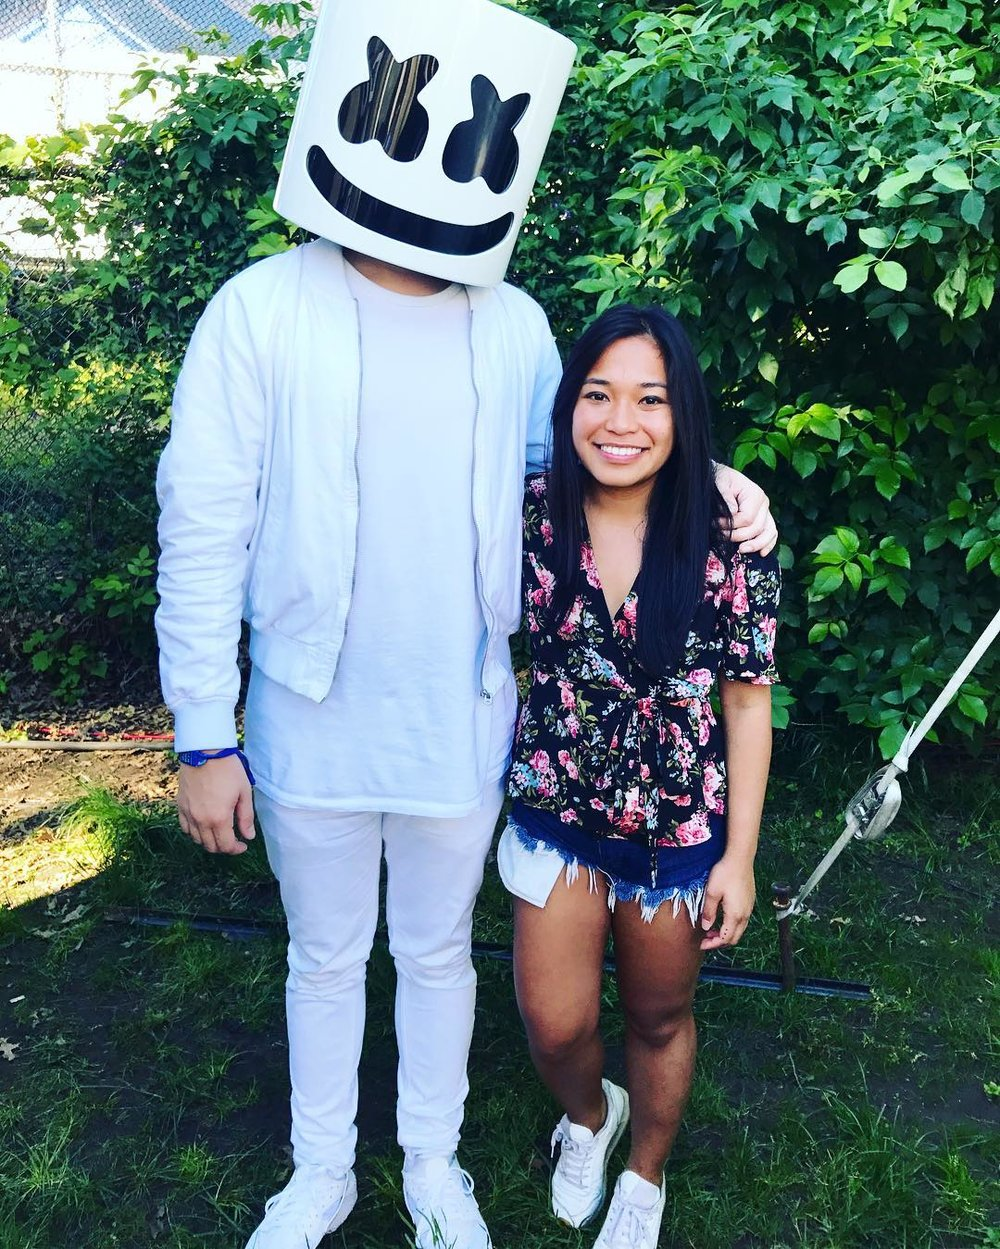 marshmello - Why You Should Stop Trying To Figure Out Who Marshmello Is